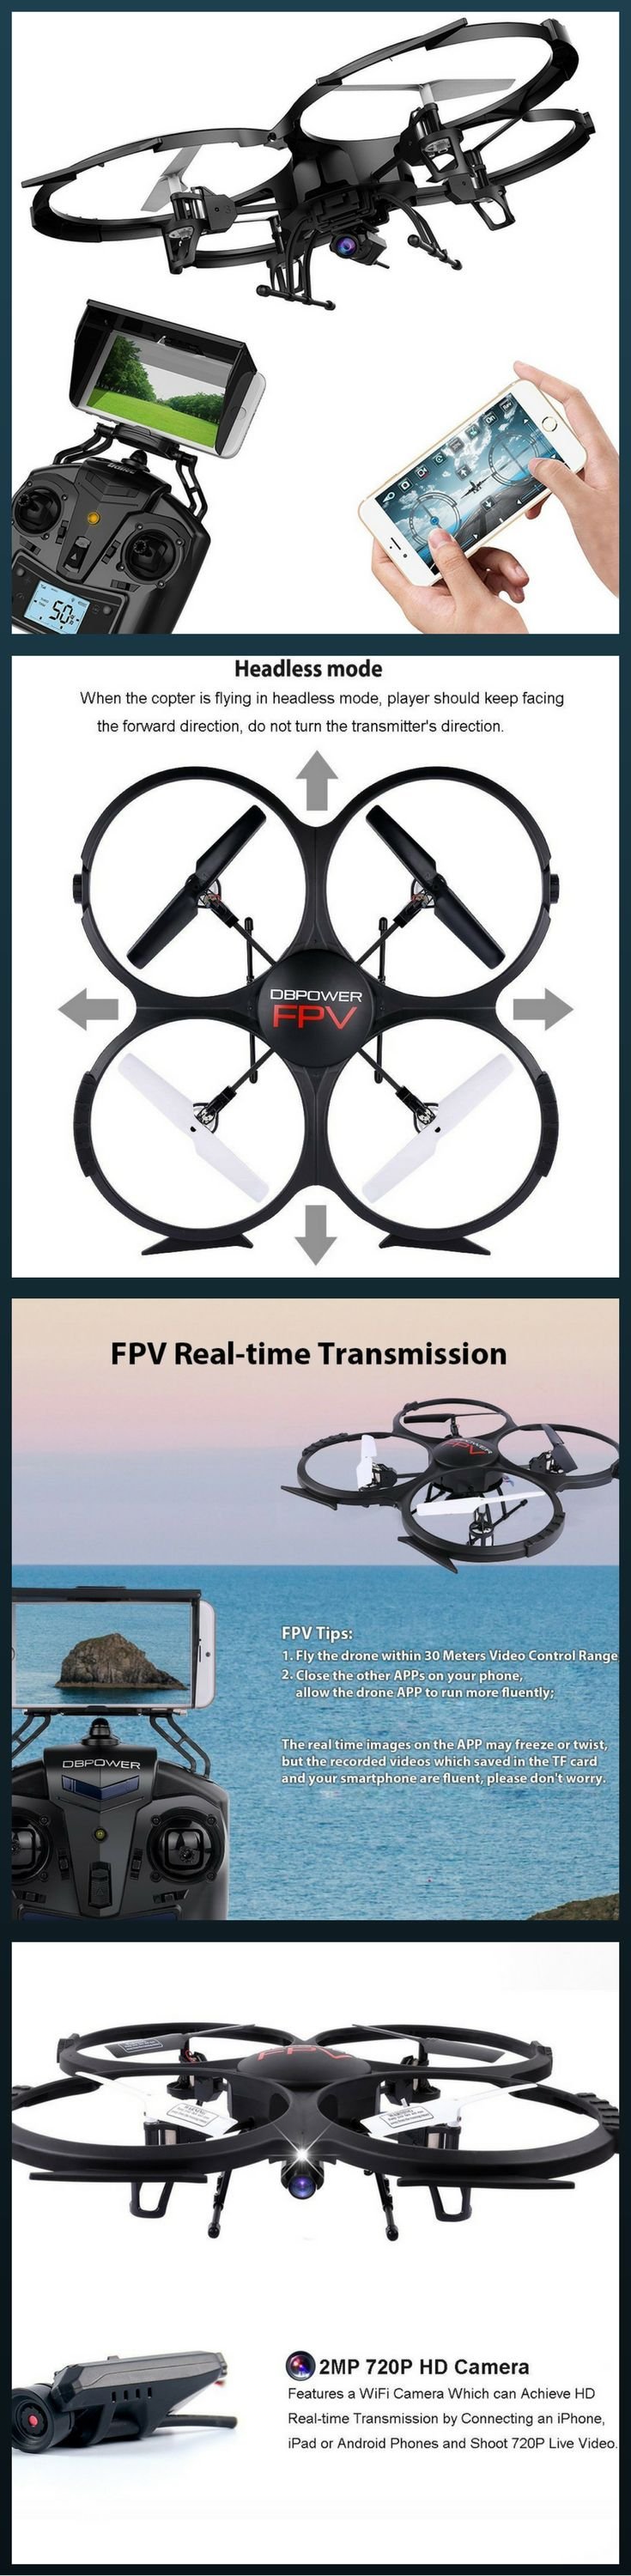 WiFi FPV Quadcopter Drone Headless Mode FIRST PERSON VIEW with VR HEADSET COMPATIBILITY: Enjoy live video feed of your flight from your iPhone or Android Smart mobile device with all new FPV WiFi feature; Easily sync VR headset (not included) to controller, enjoy the thrill of flight as you speed through the air. (FAA Registration NOT Required!)